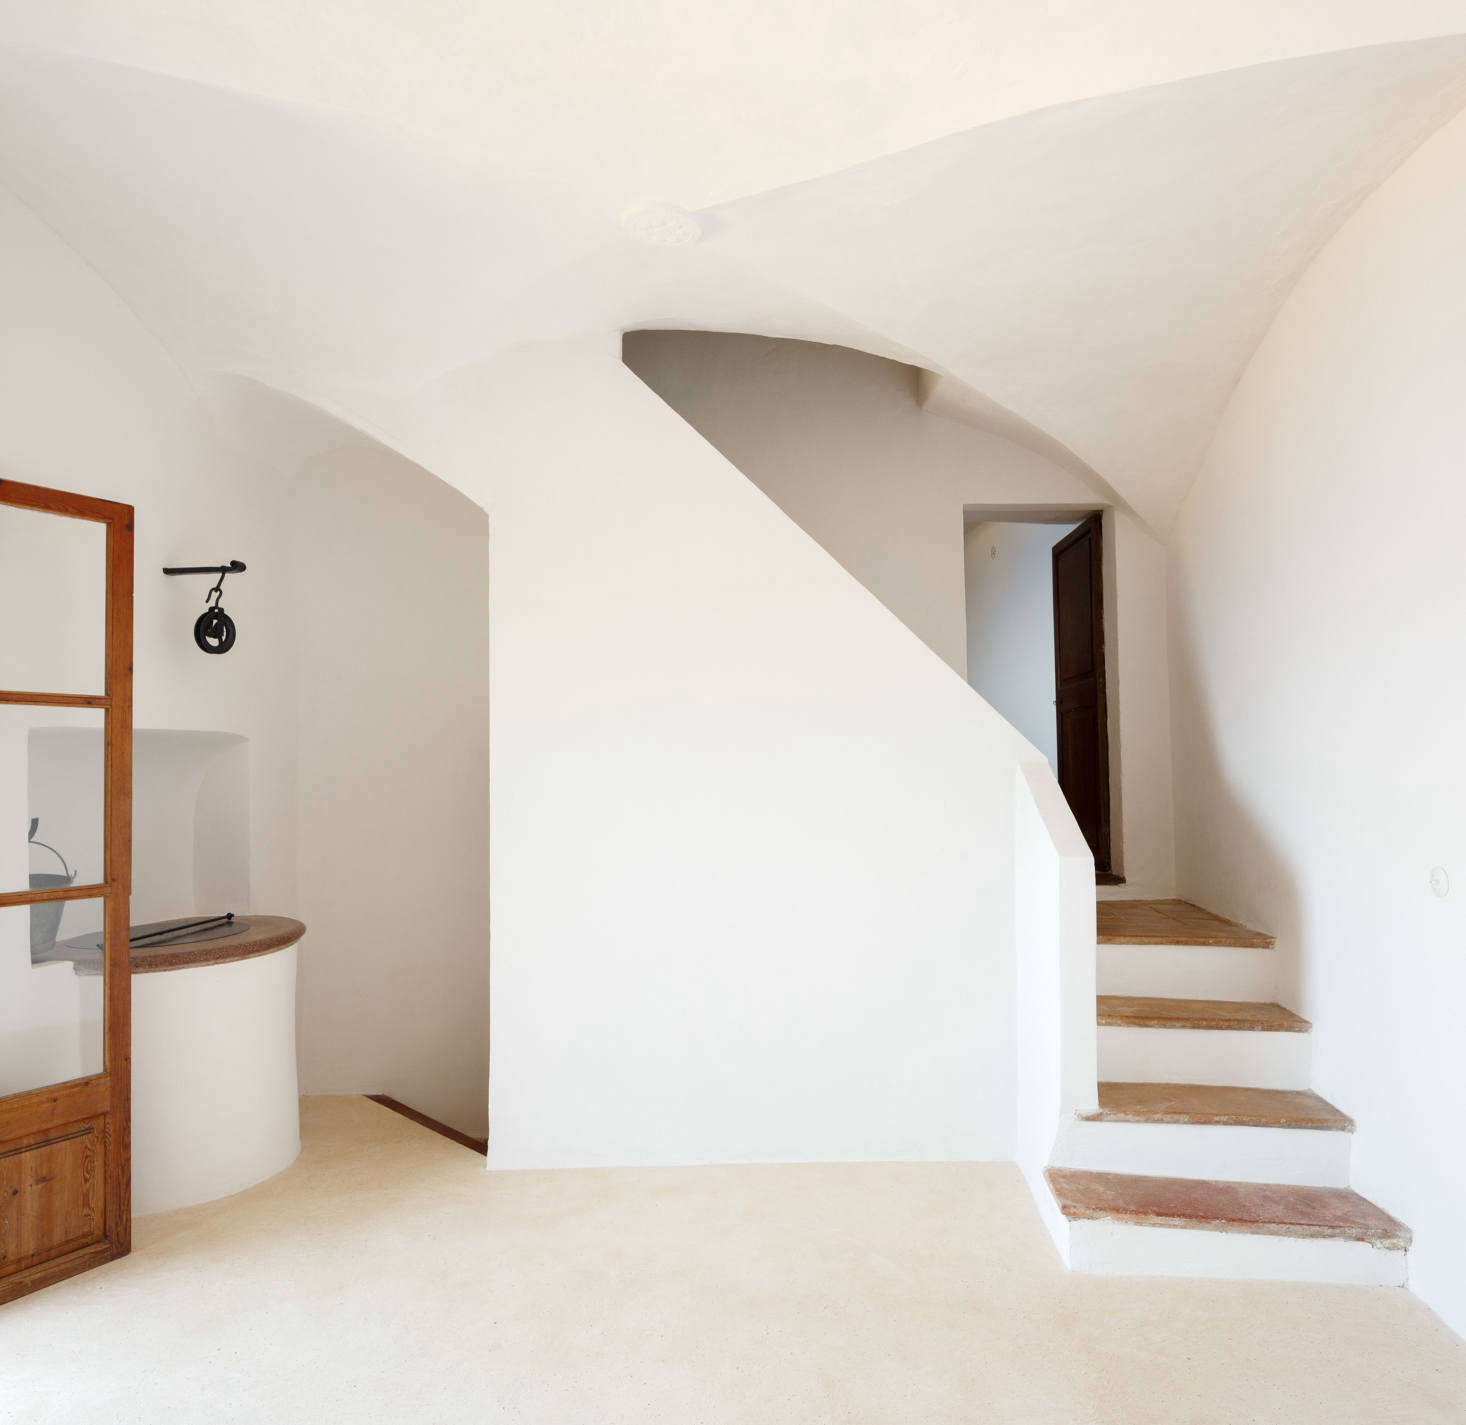 """Two stairways lead to the other rooms: one bathroom, two bedrooms, a """"winter living room,"""" and a small library."""